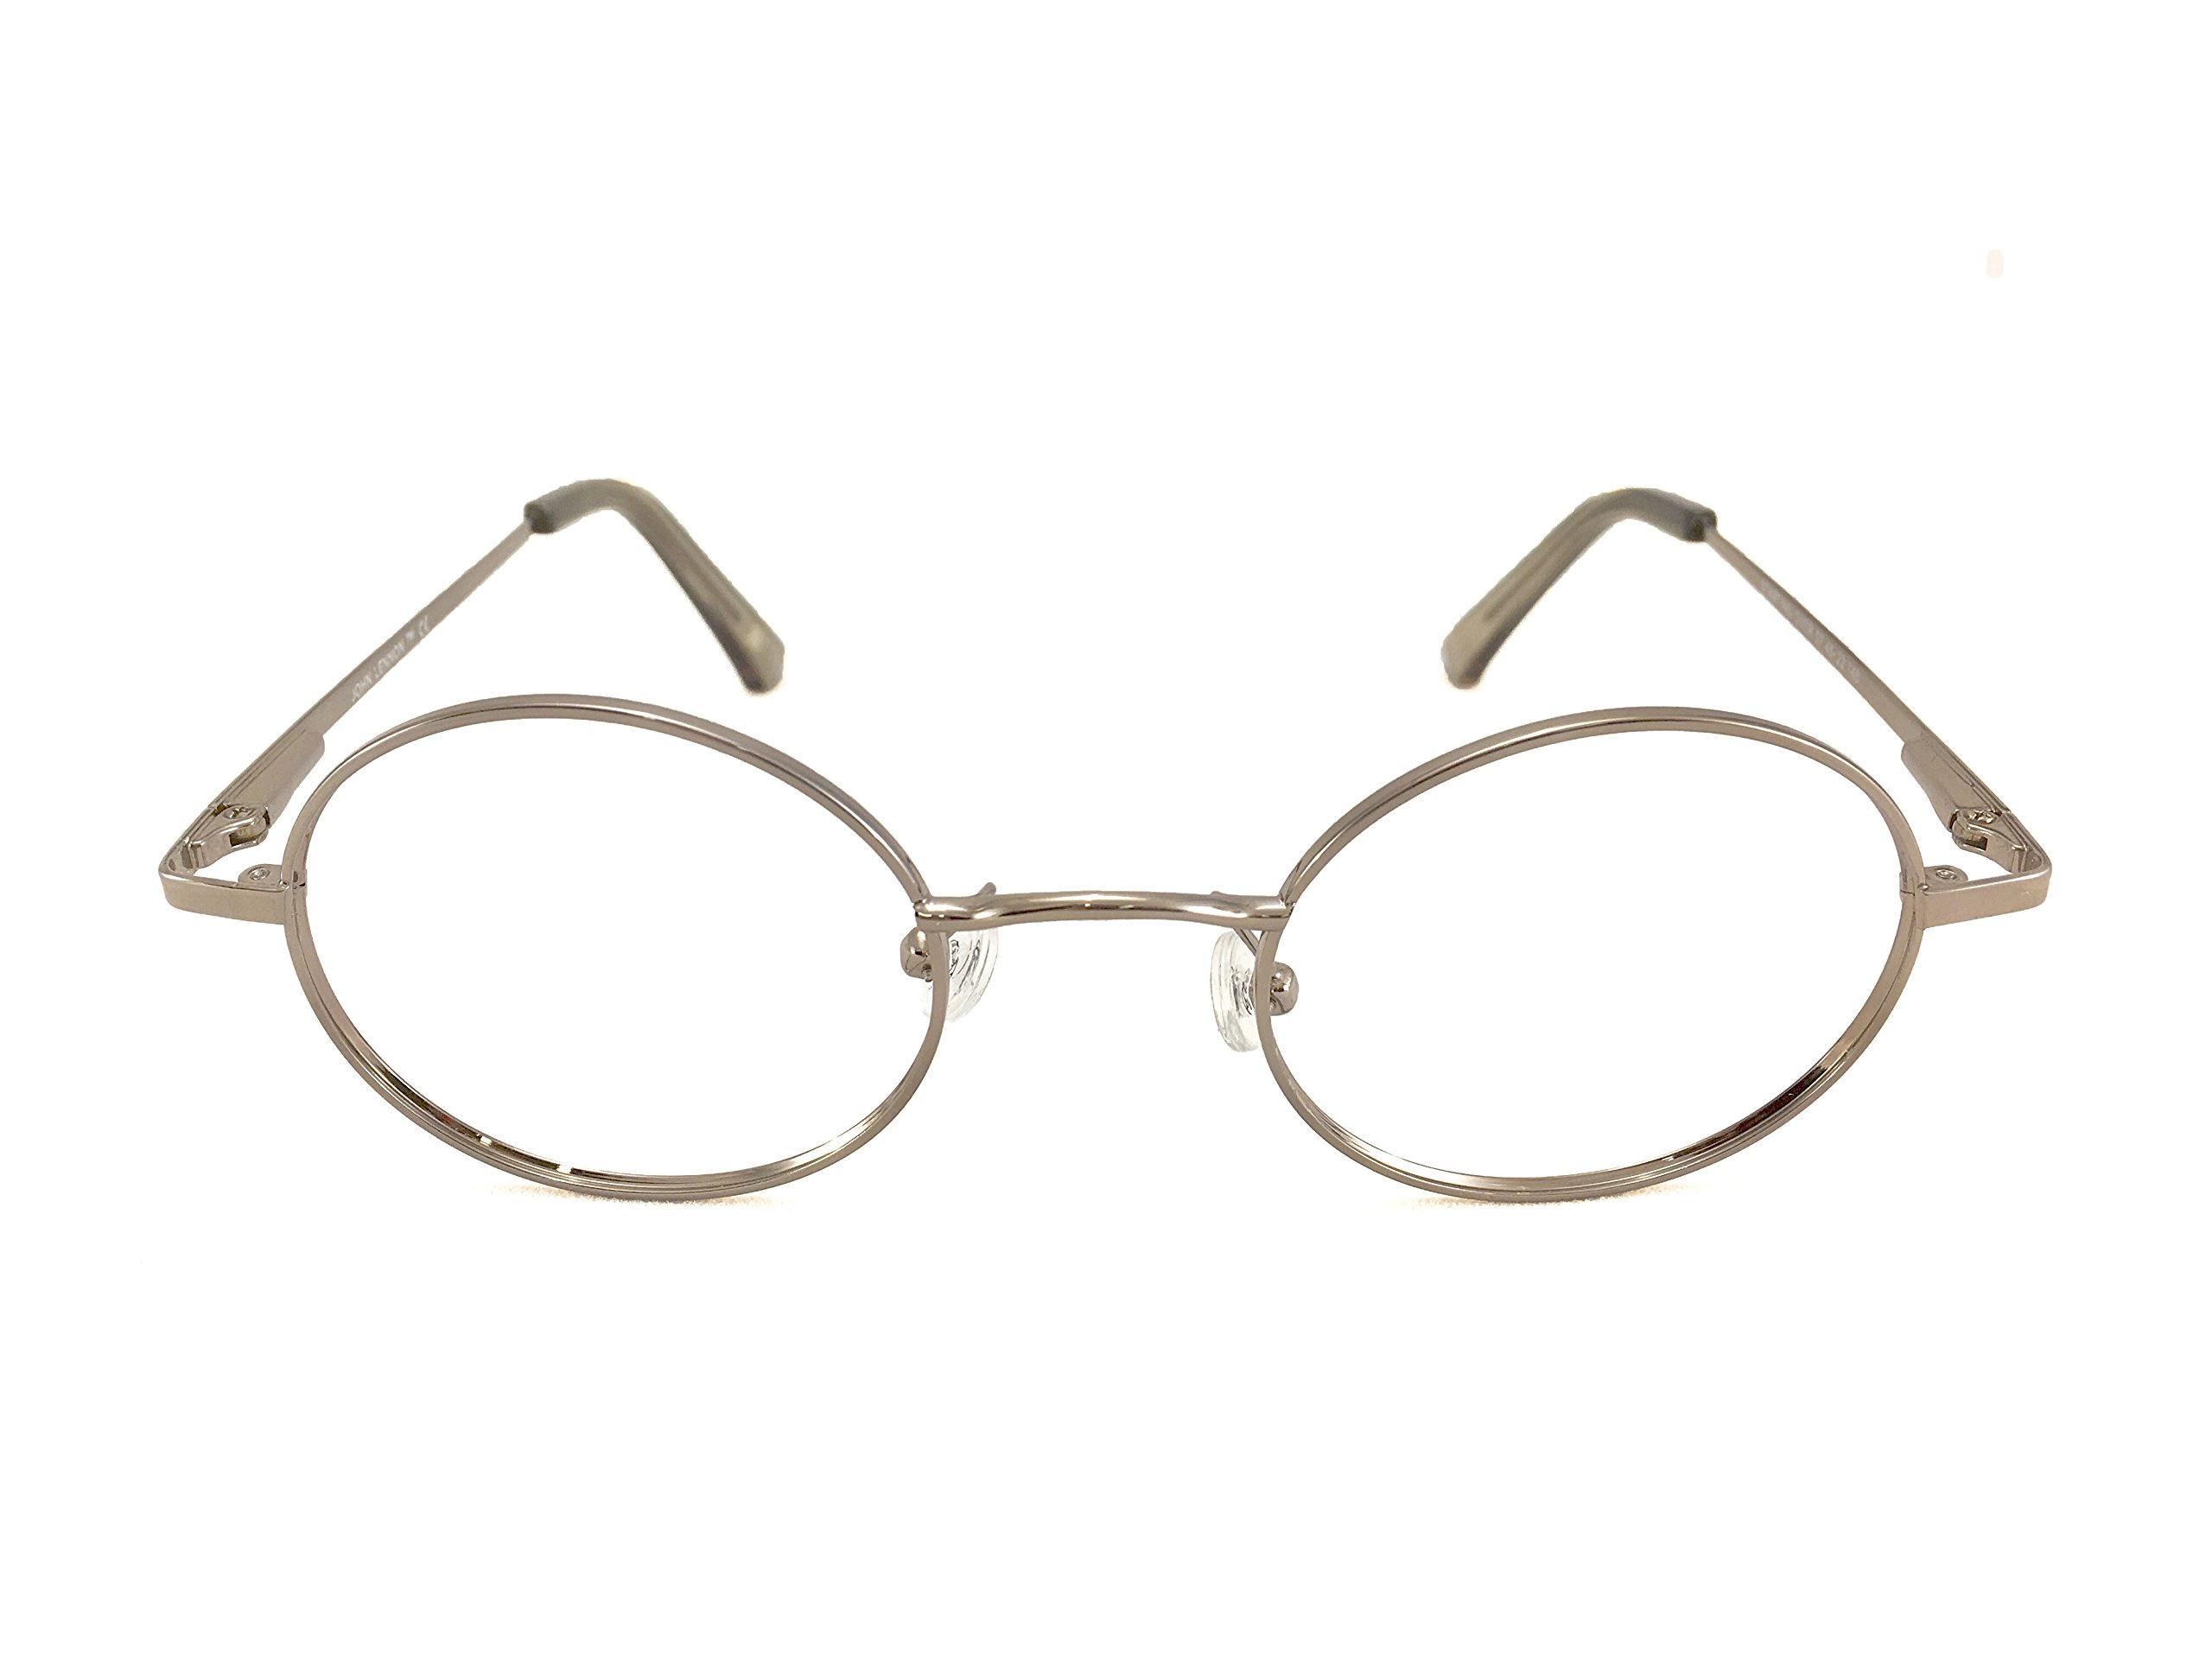 John Lennon Starting Over Eyeglass Frame - Silver by John Lennon